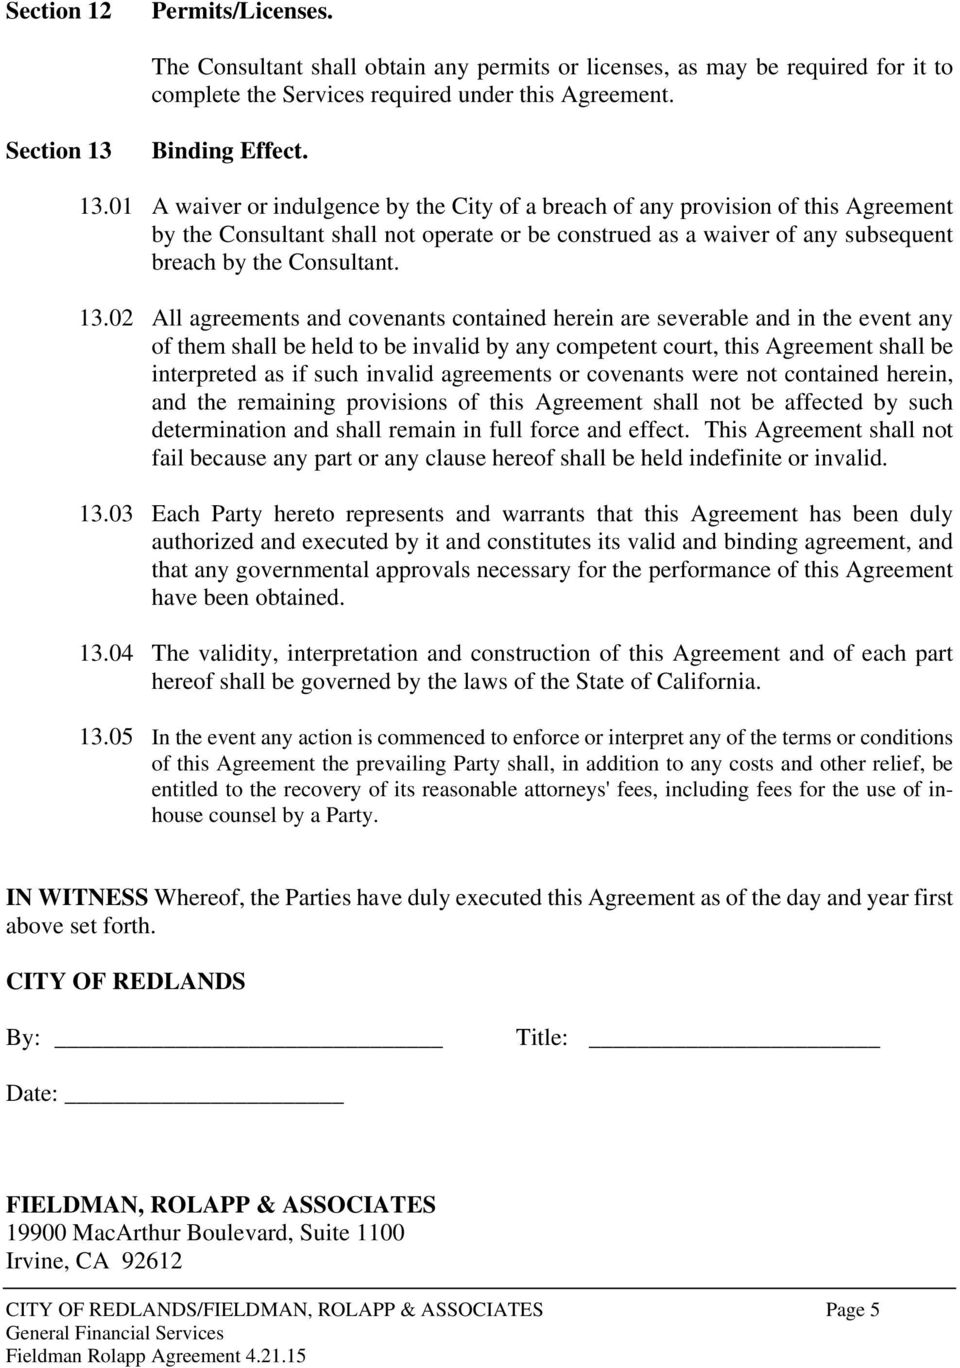 01 A waiver or indulgence by the City of a breach of any provision of this Agreement by the Consultant shall not operate or be construed as a waiver of any subsequent breach by the Consultant. 13.